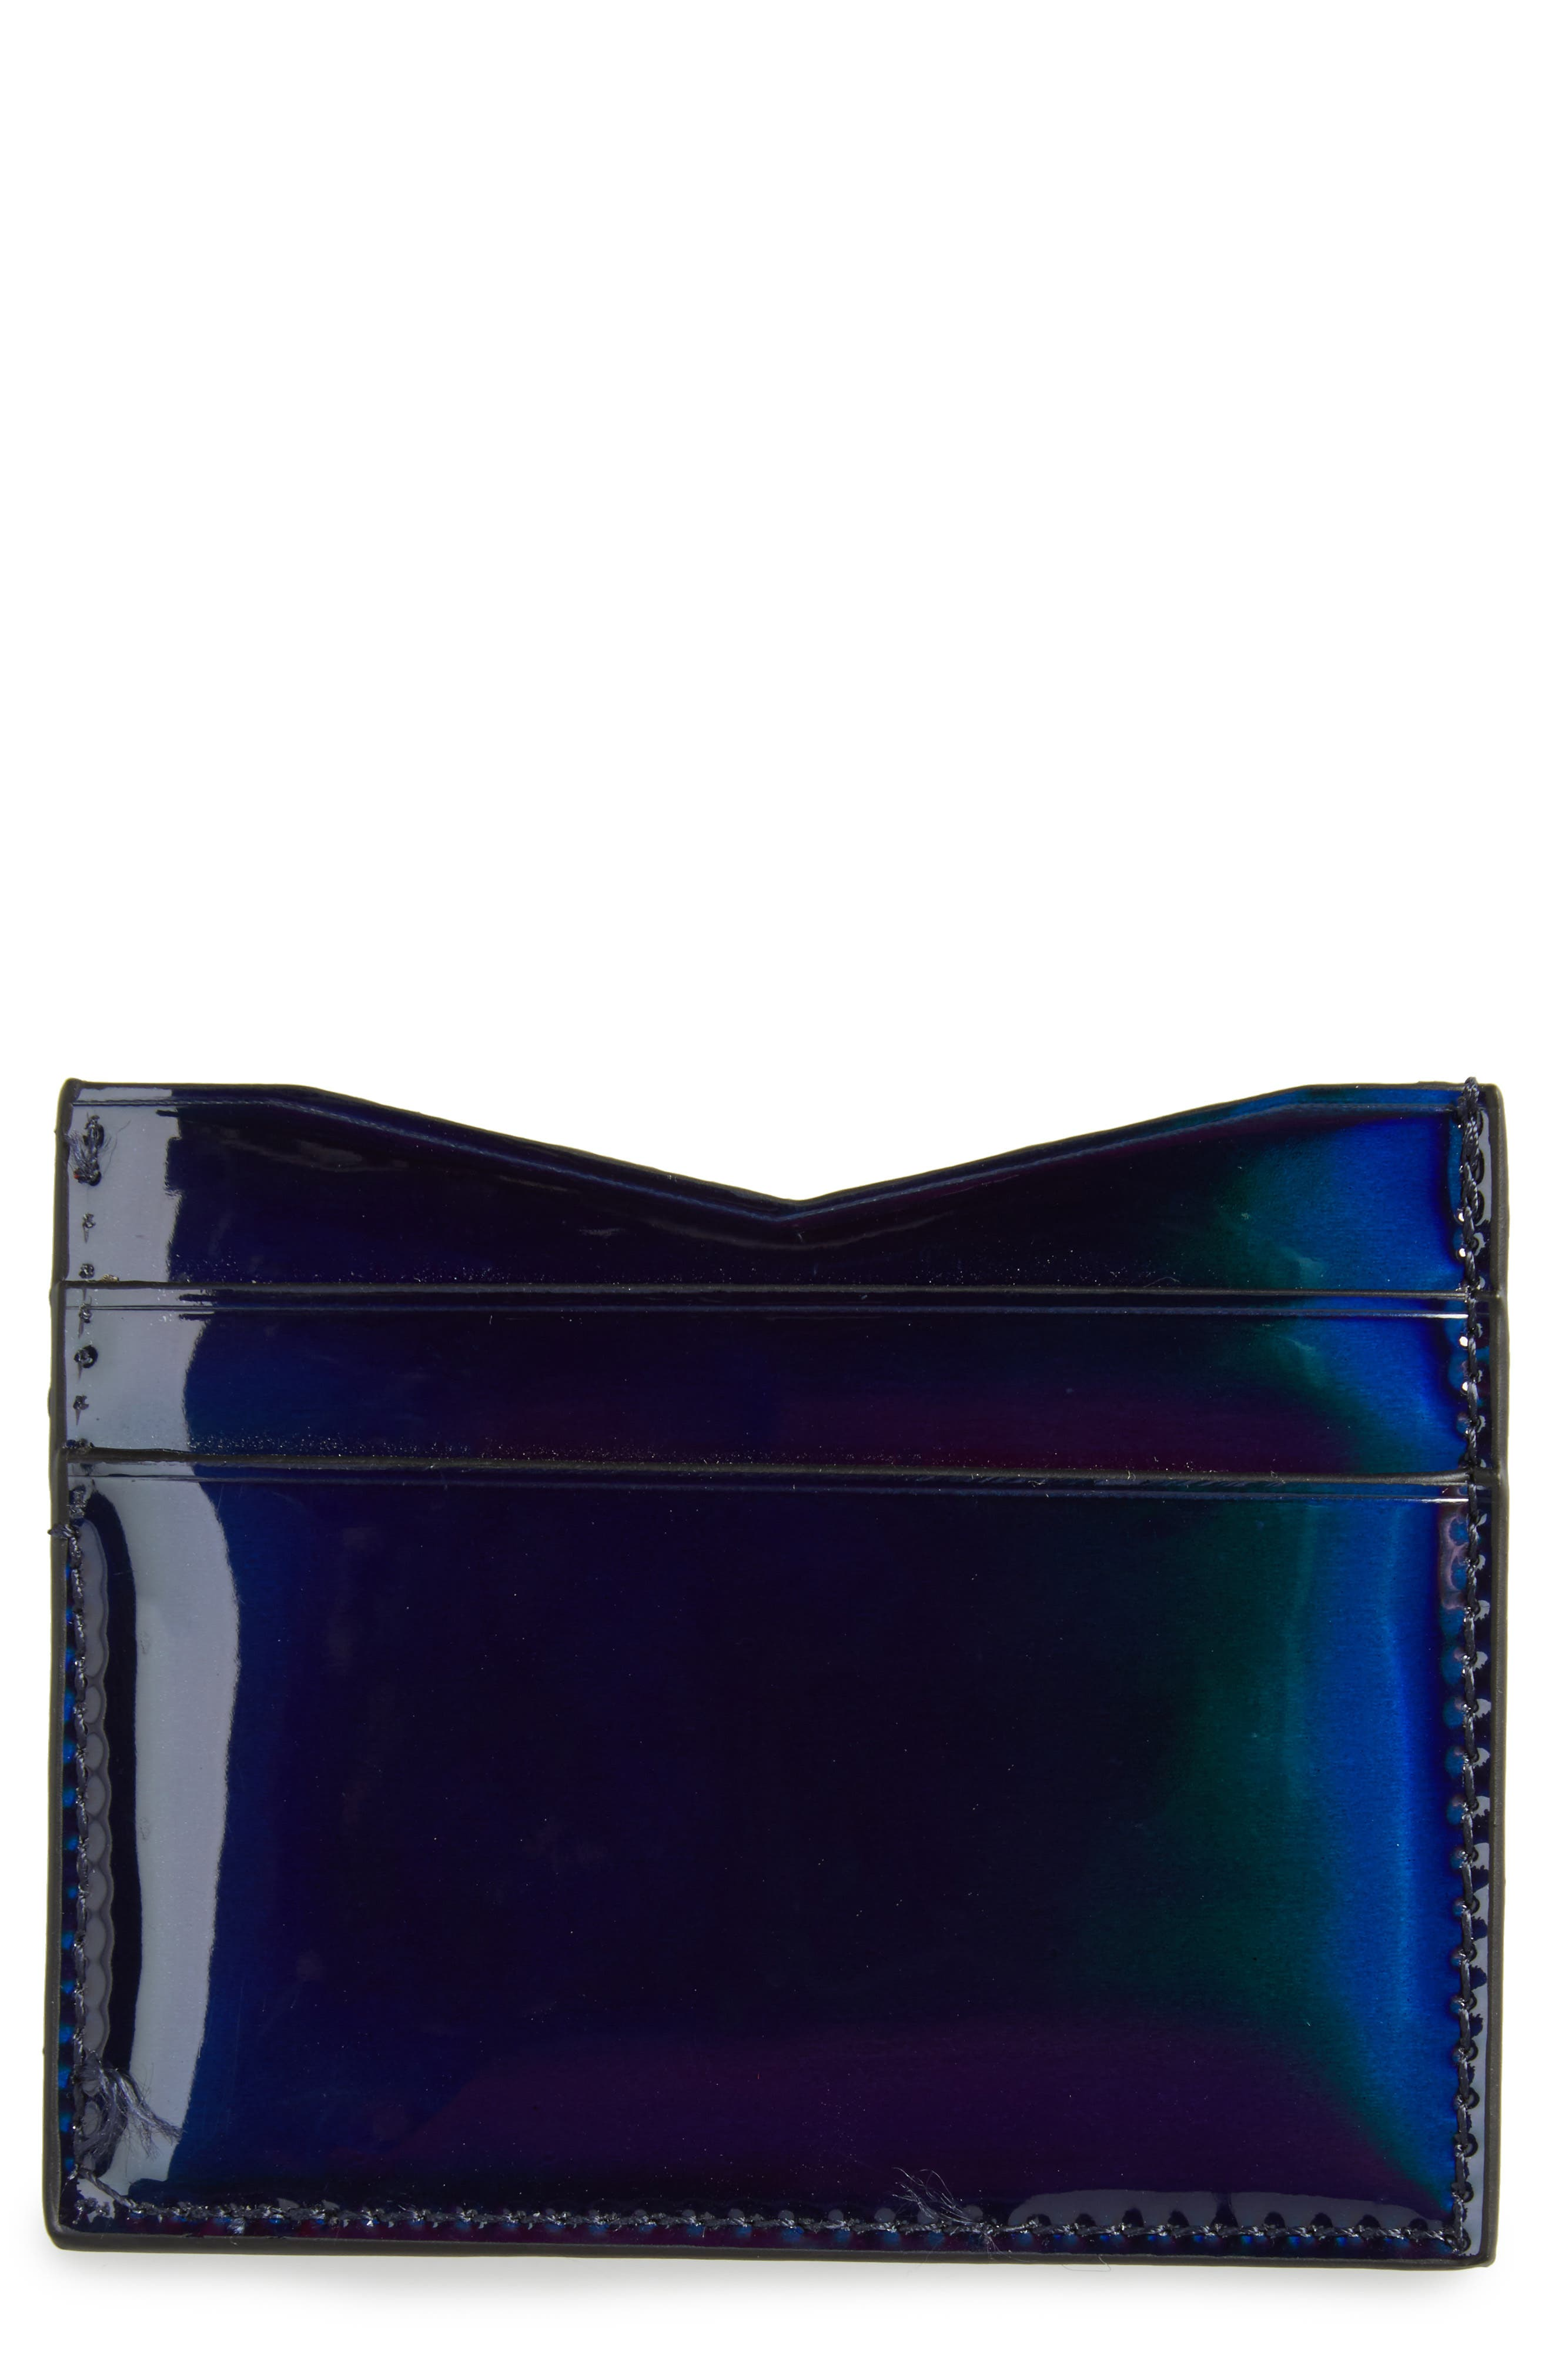 KENDALL + KYLIE Emma Card Case